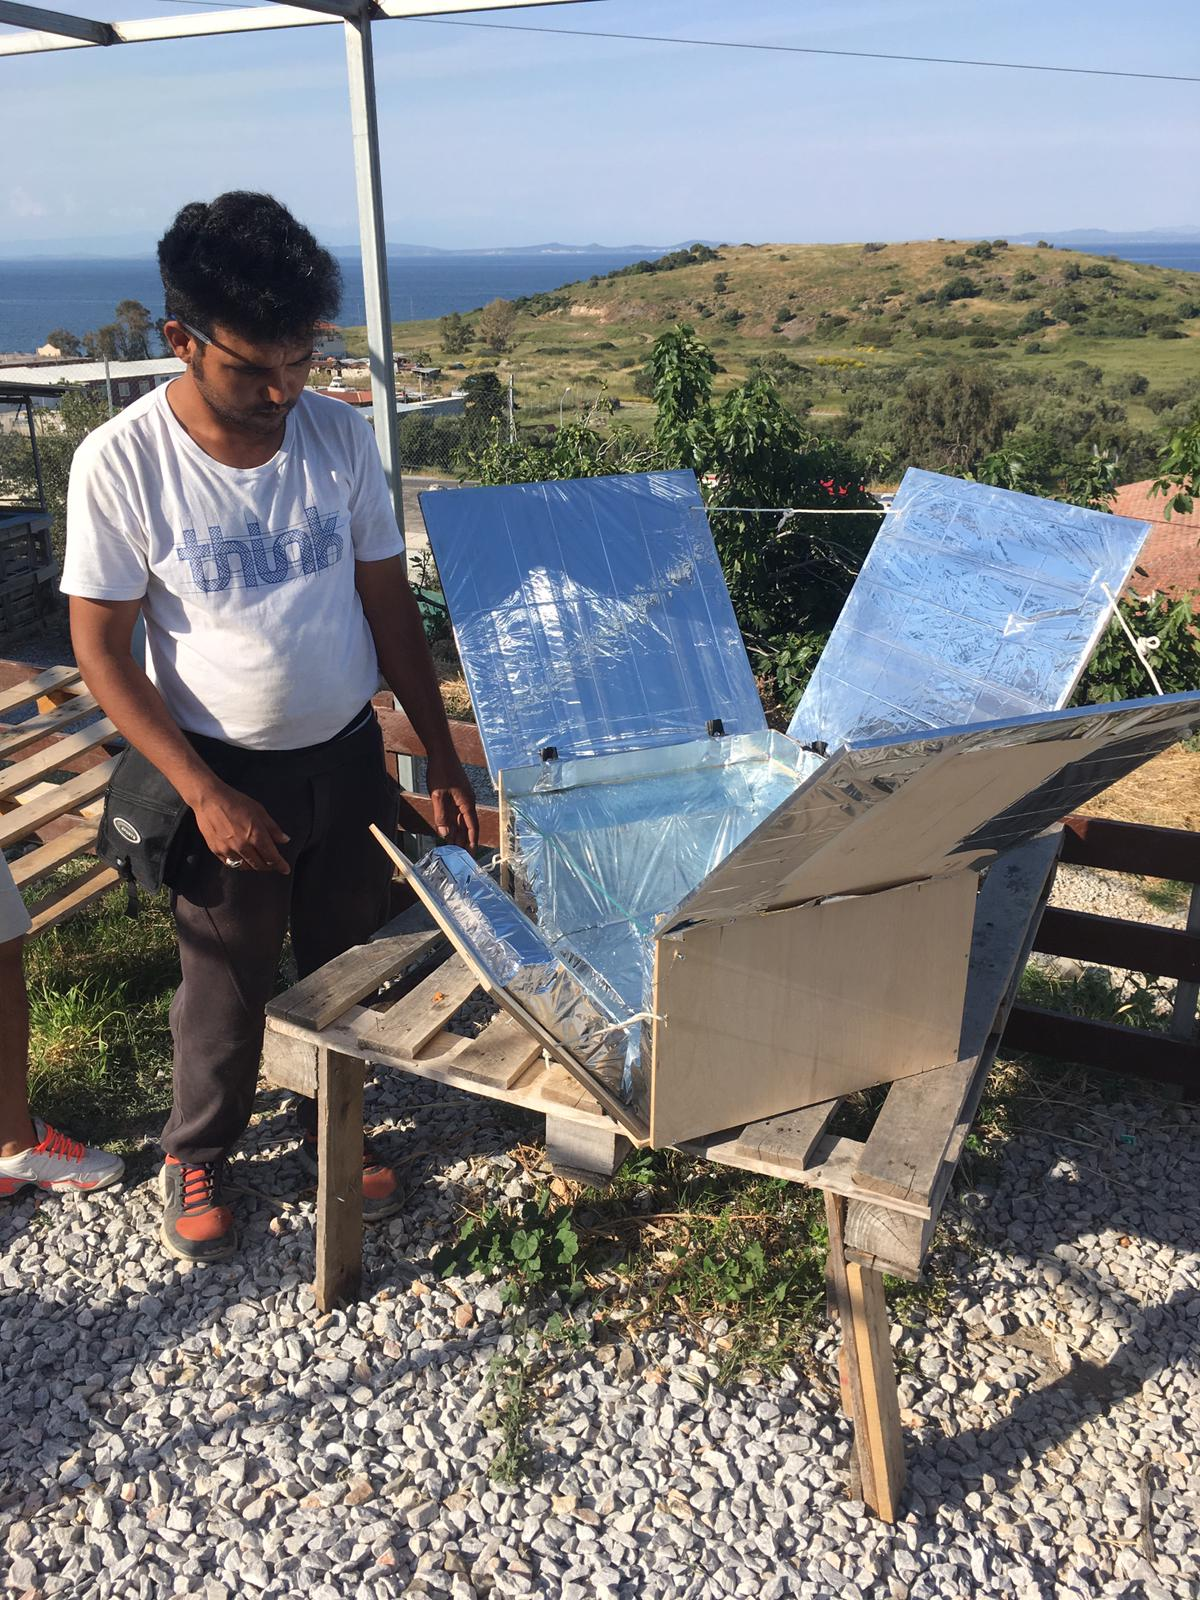 a pic of Mehdi from the makerspace standing by a solar oven made for the rescue boat Mare Liberum